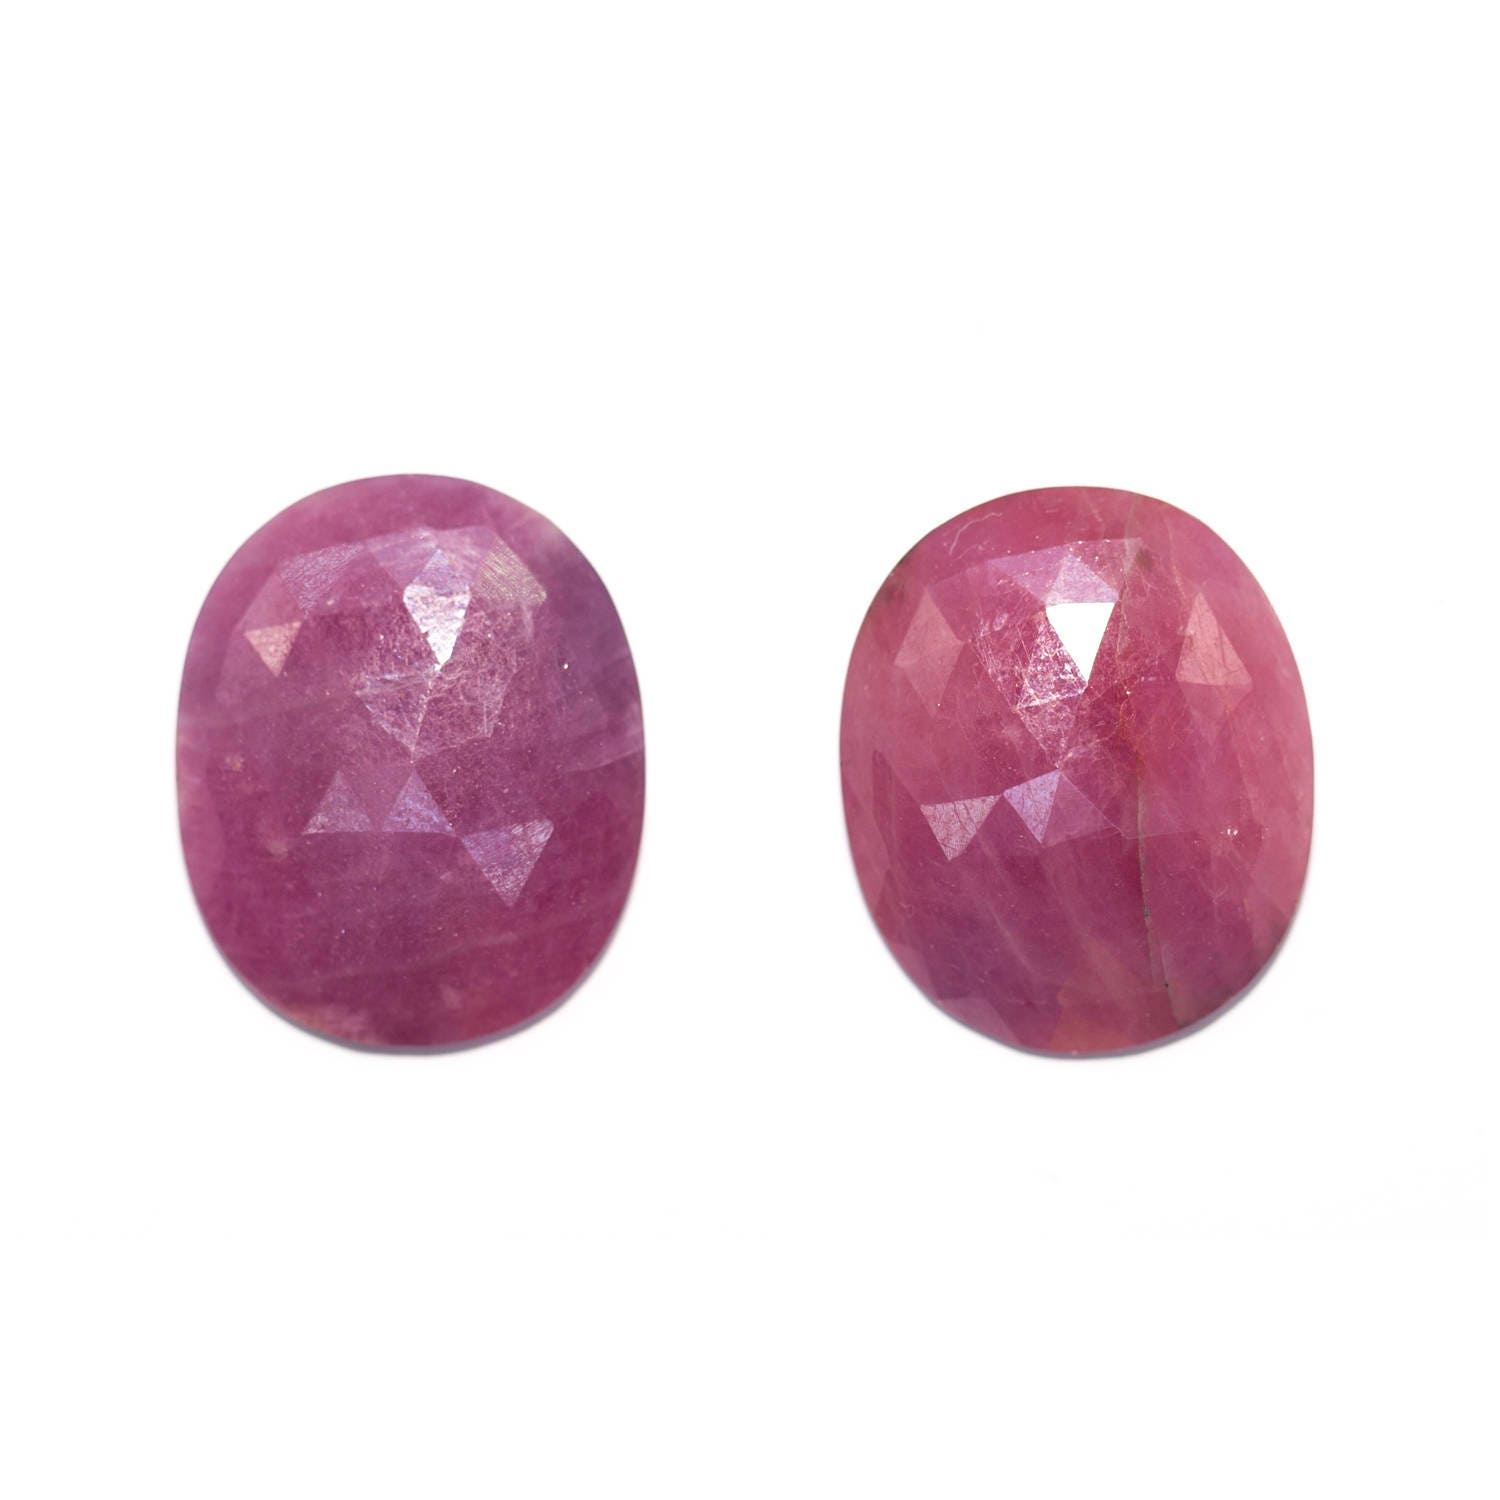 ruby sale certified african gemstones ct id gemstone for india in lots wholesale resellers